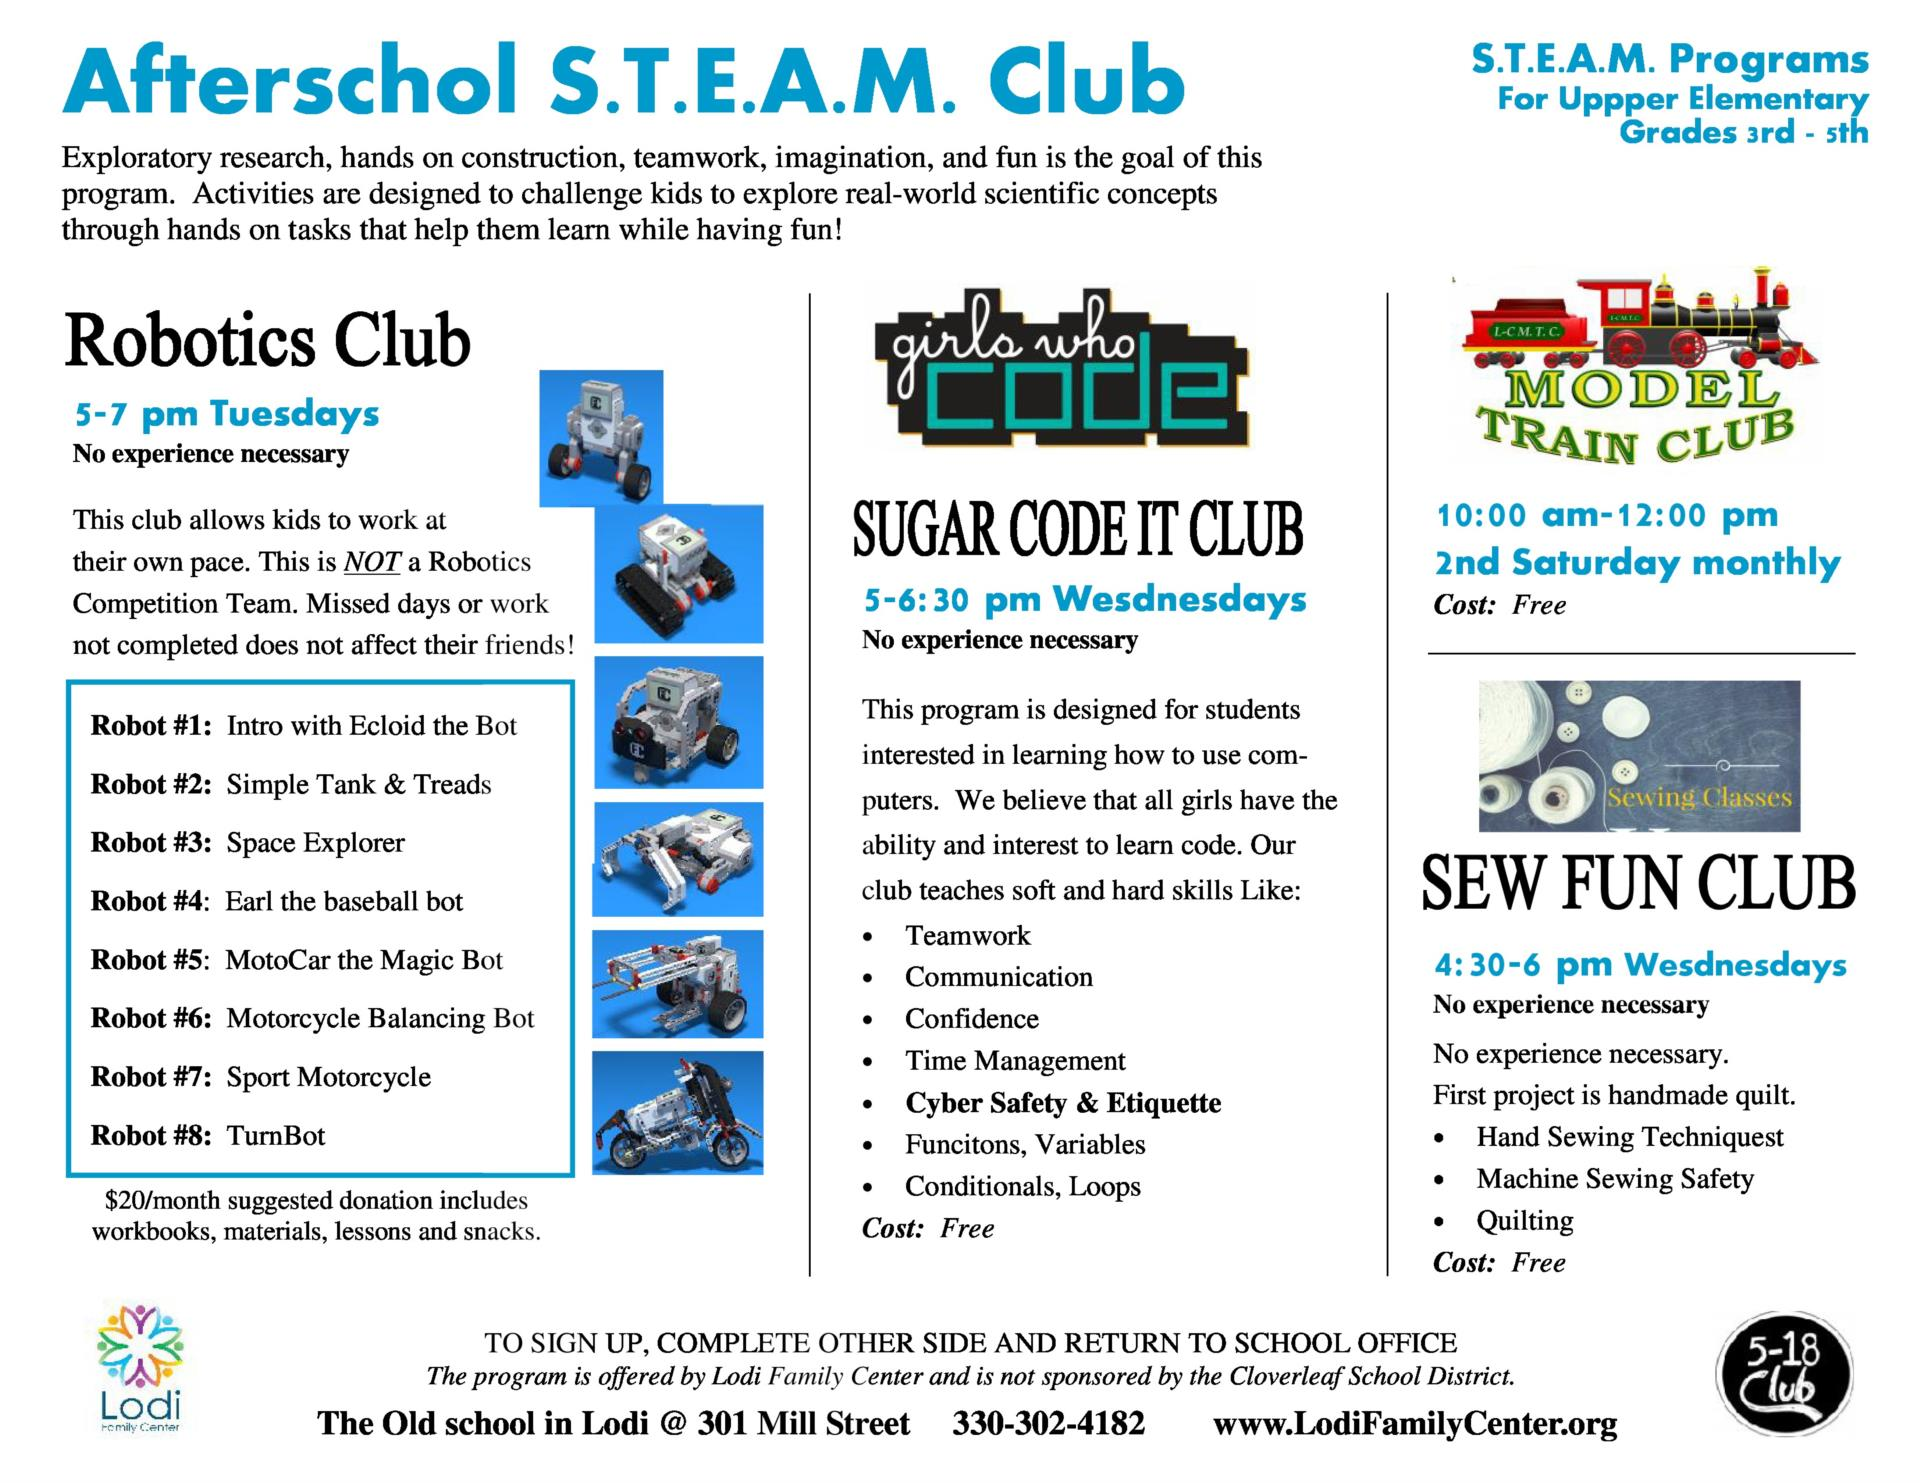 After School STEAM Club